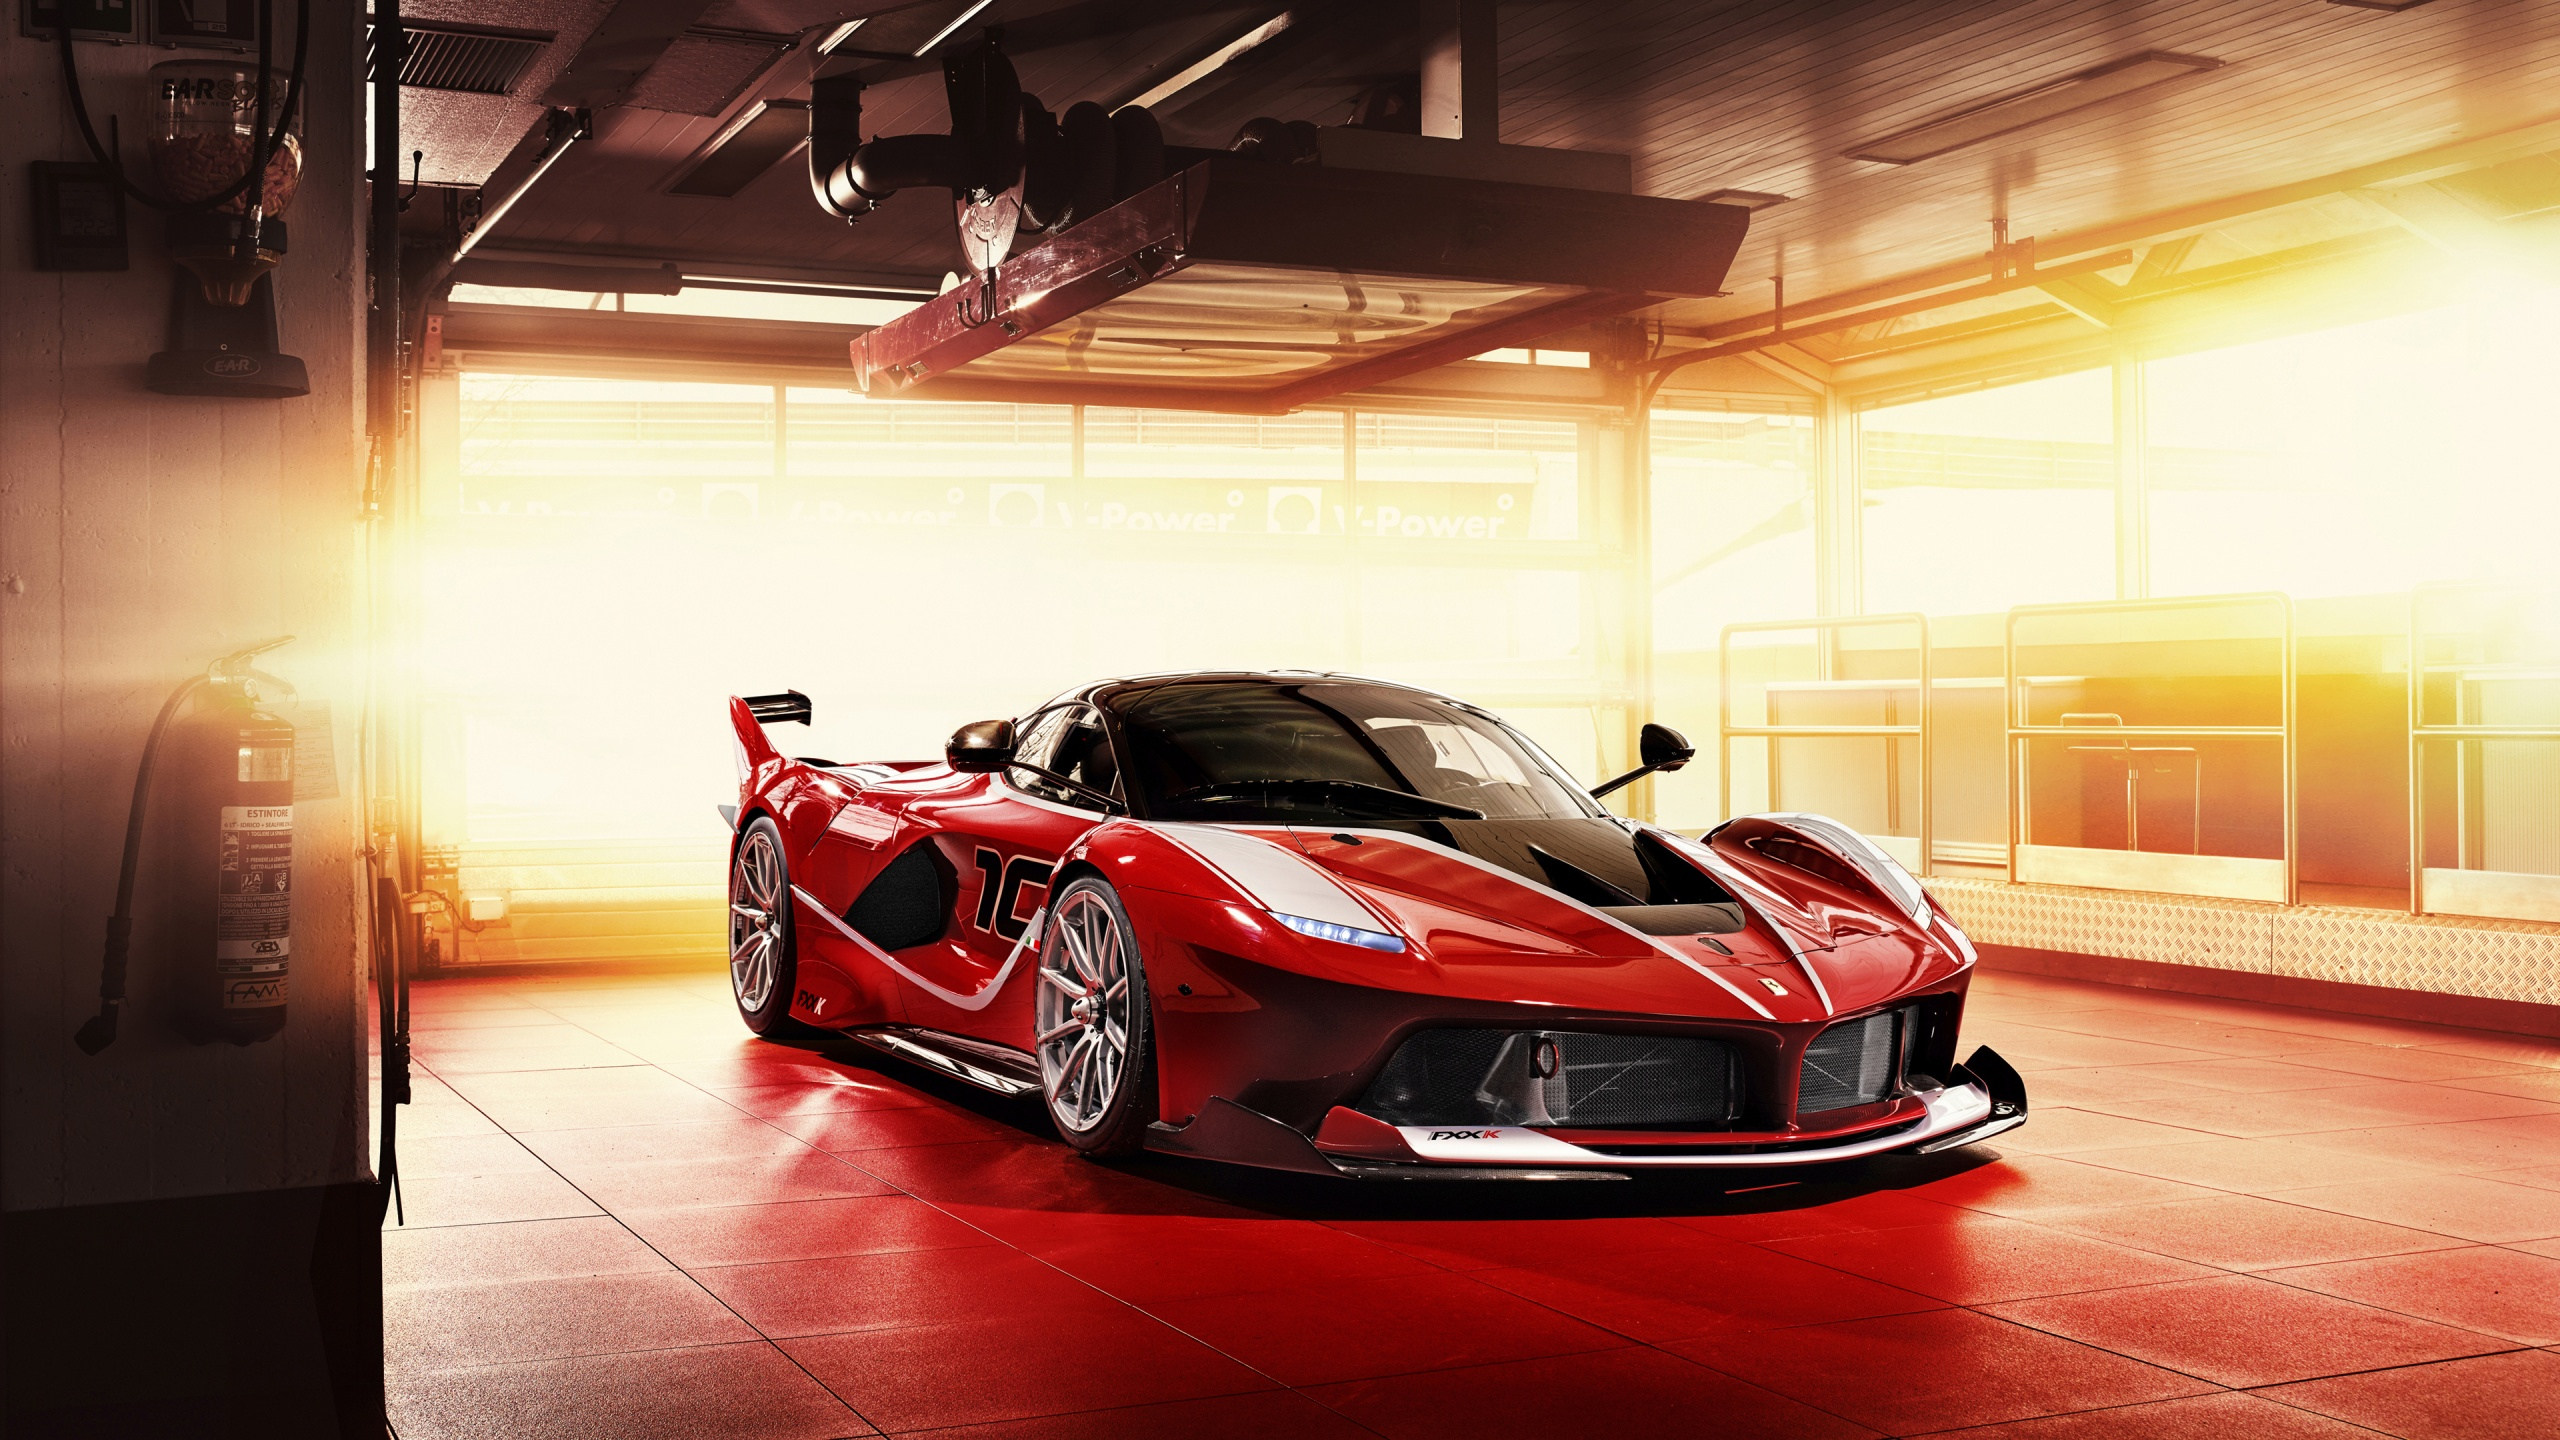 2015 Ferrari 458 Speciale >> Ferrari FXX K 2015 Wallpapers in jpg format for free download